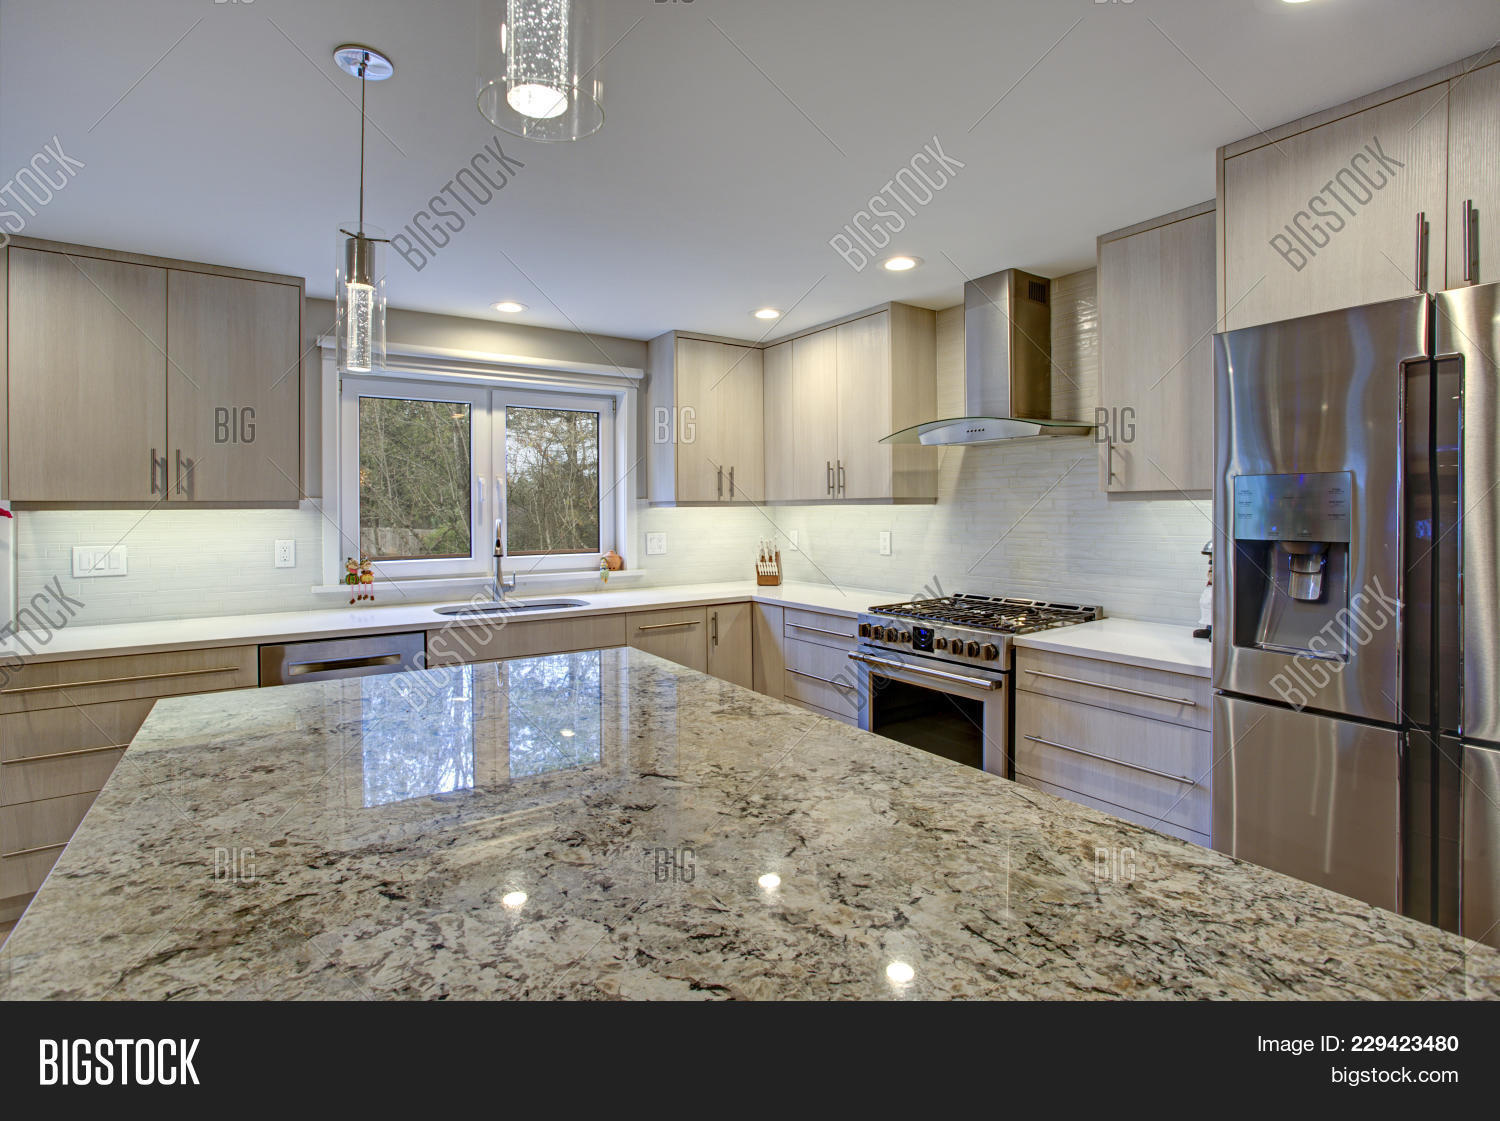 - Lovely Kitchen Room Image & Photo (Free Trial) Bigstock